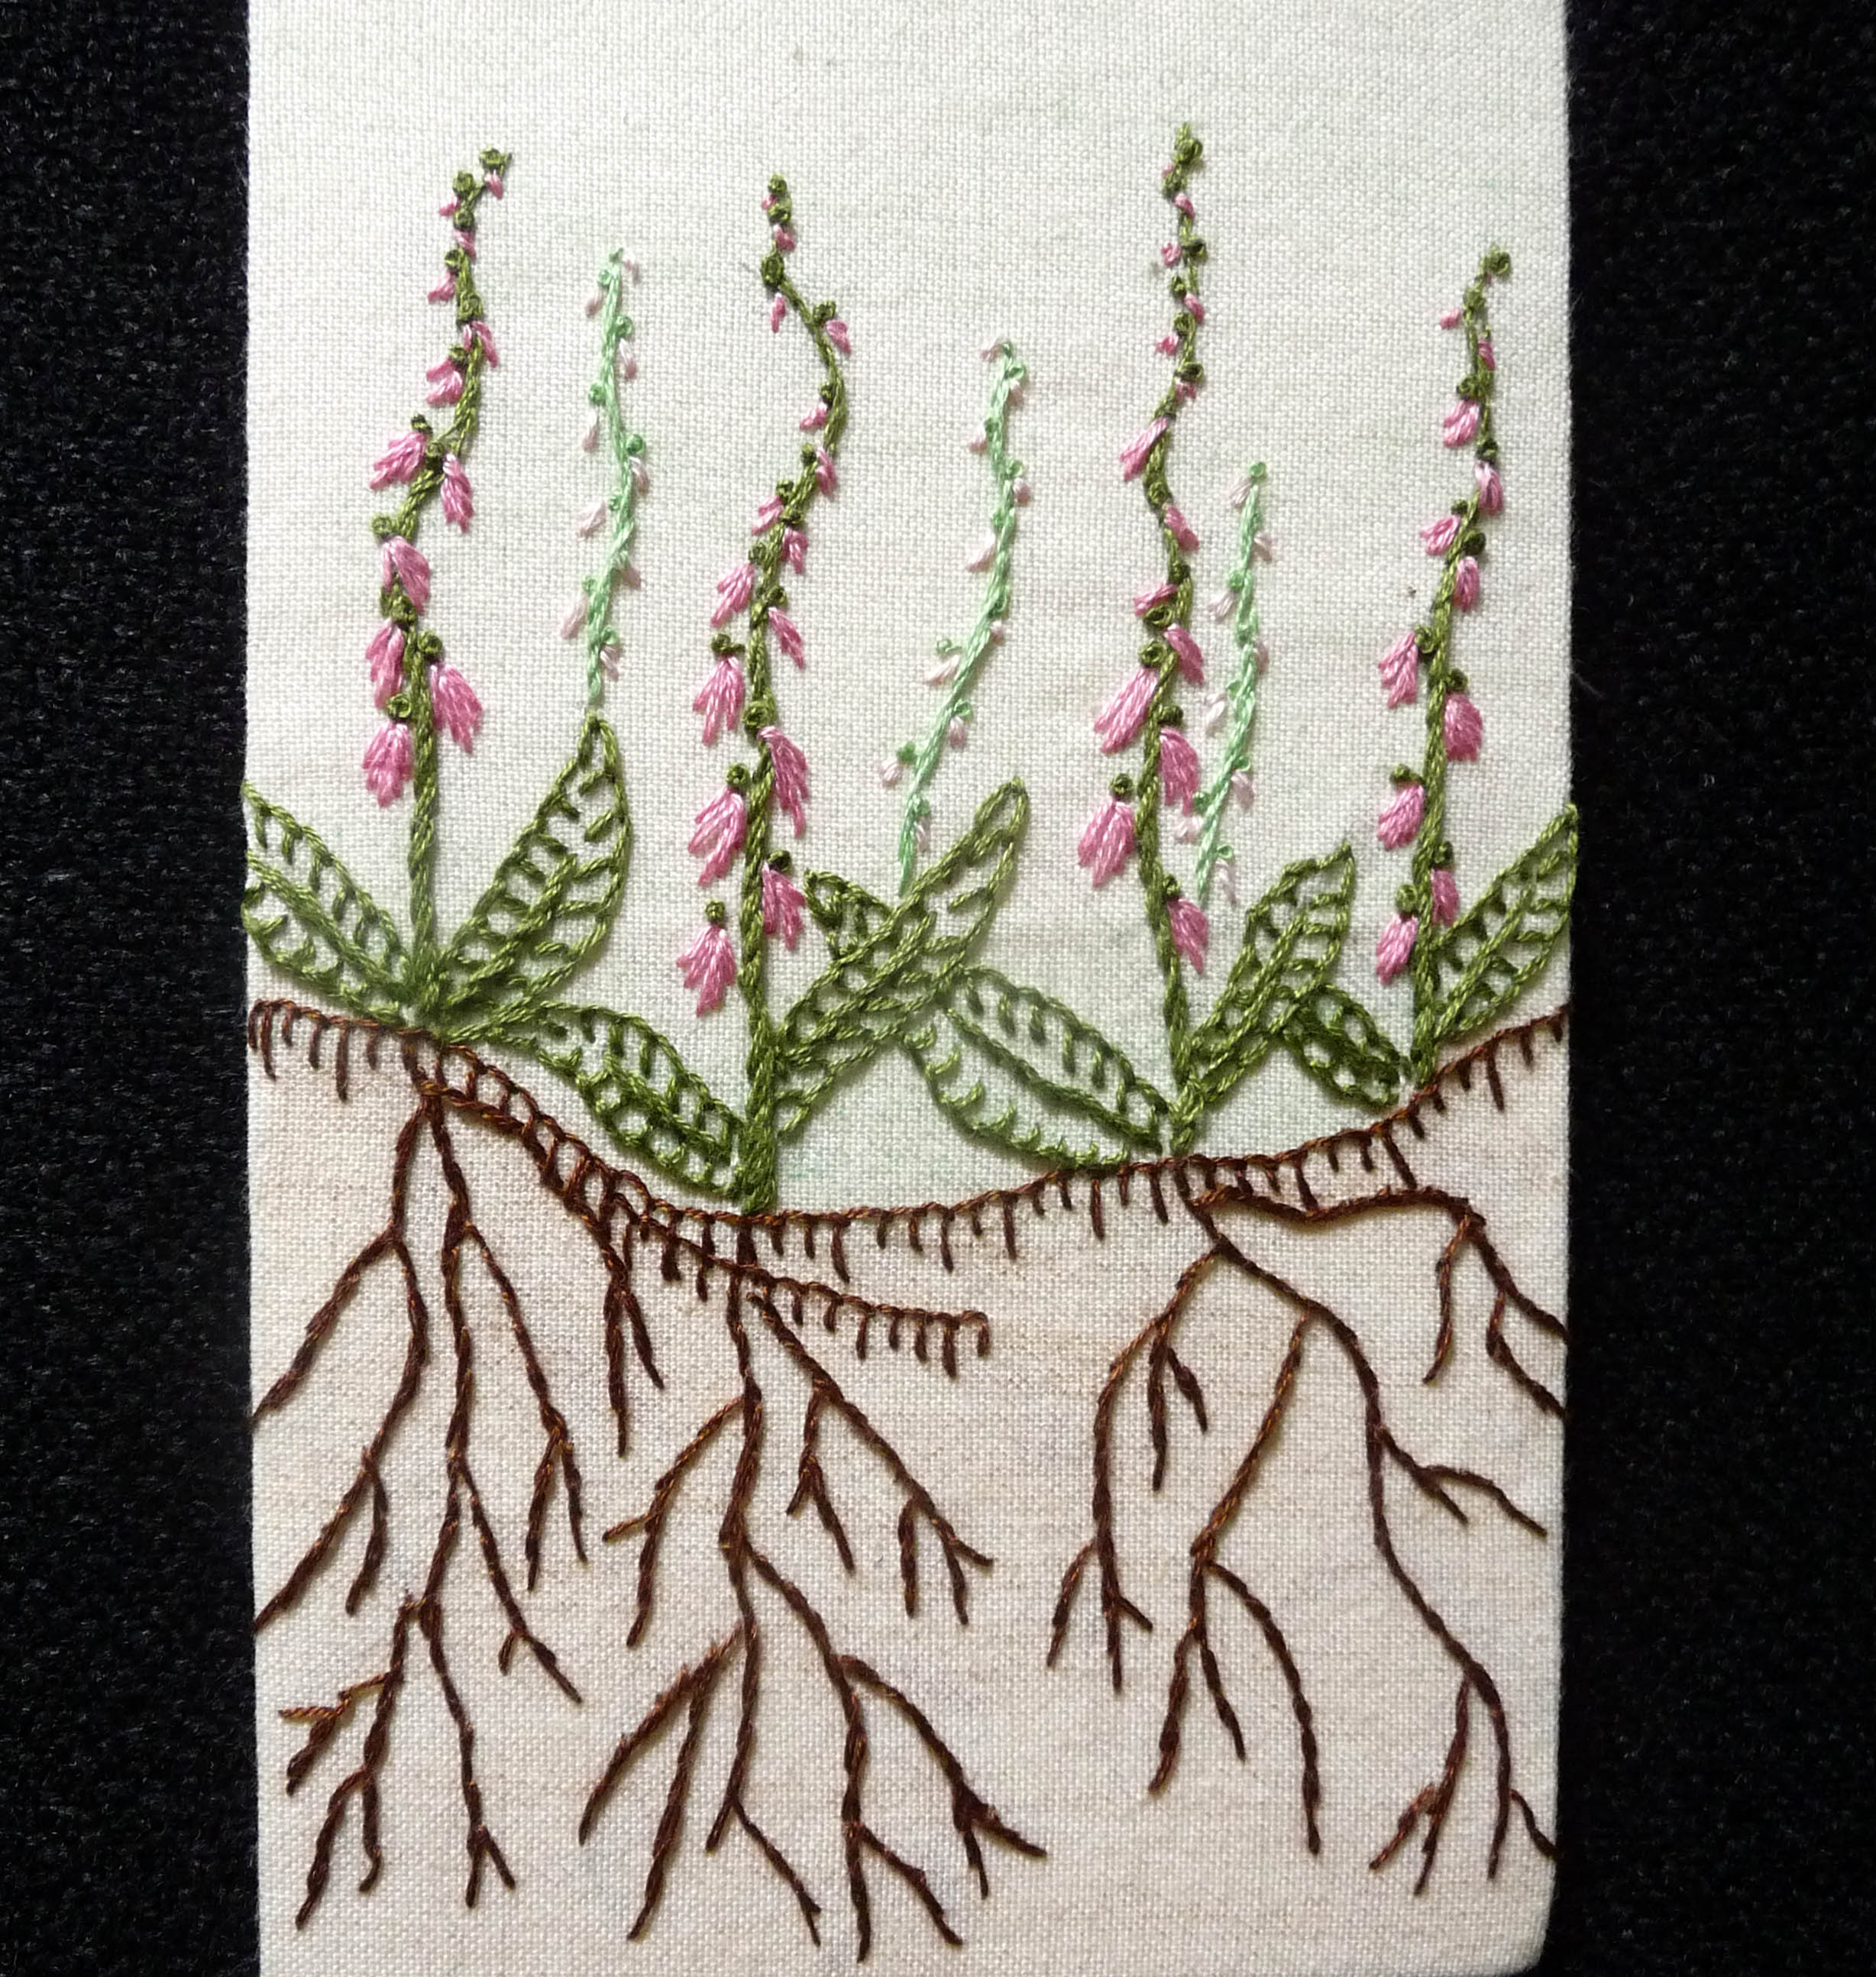 GROWTH postcard by Val Heron